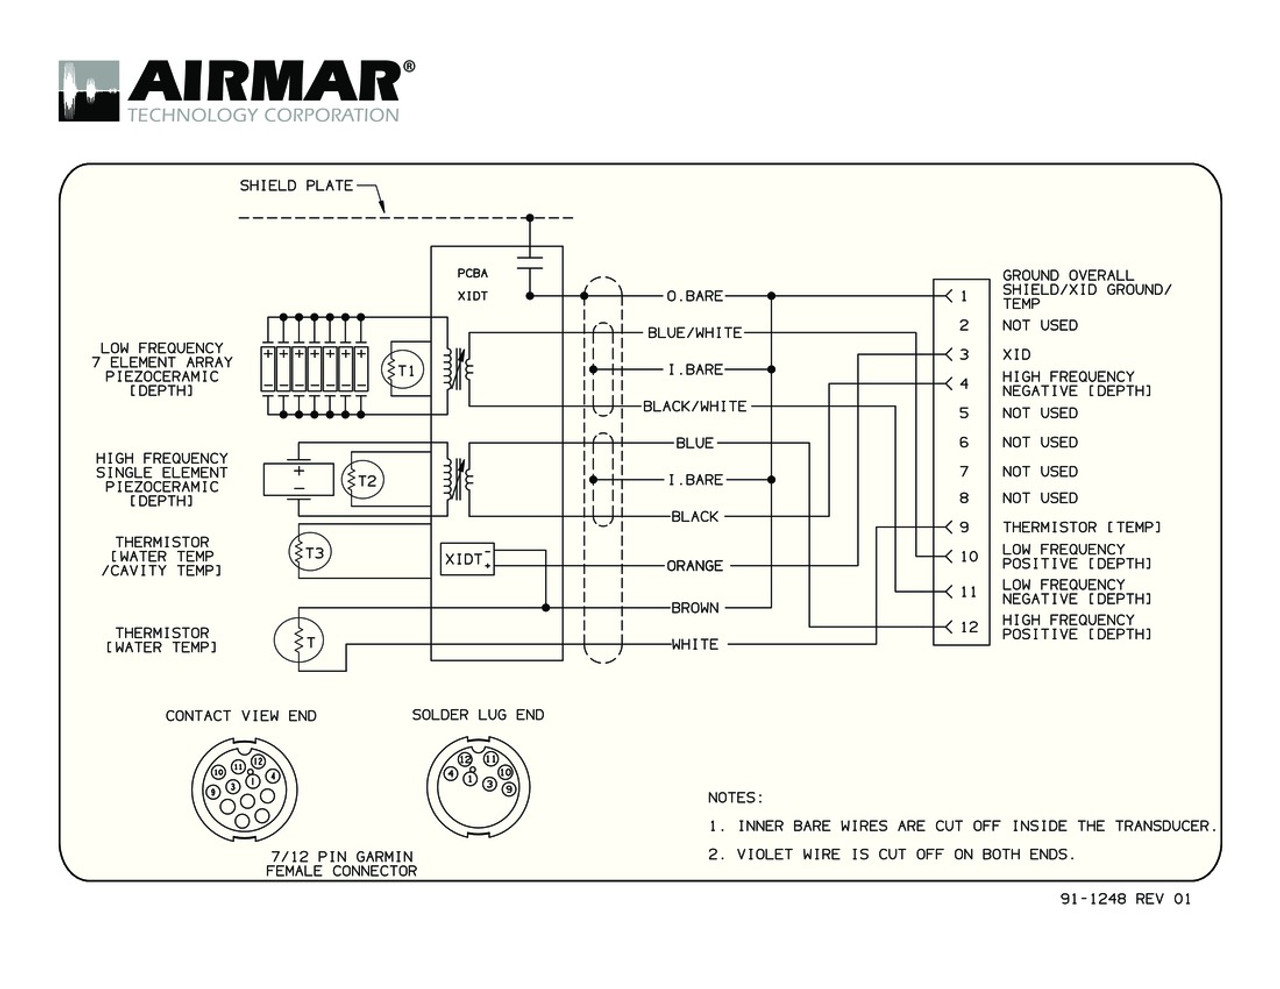 WRG-7489] Unilite Distributor Wiring For A Gma on ignition switch wiring diagram, ford f-150 wiring harness diagram, ignition ballast resistor wiring diagram, ford ignition system diagram, mallory dual point distributor diagram, electronic ignition diagram, neutral saftey switch wiring diagram, coil wiring diagram, electronic ballast wiring diagram, unilite ignition wiring,